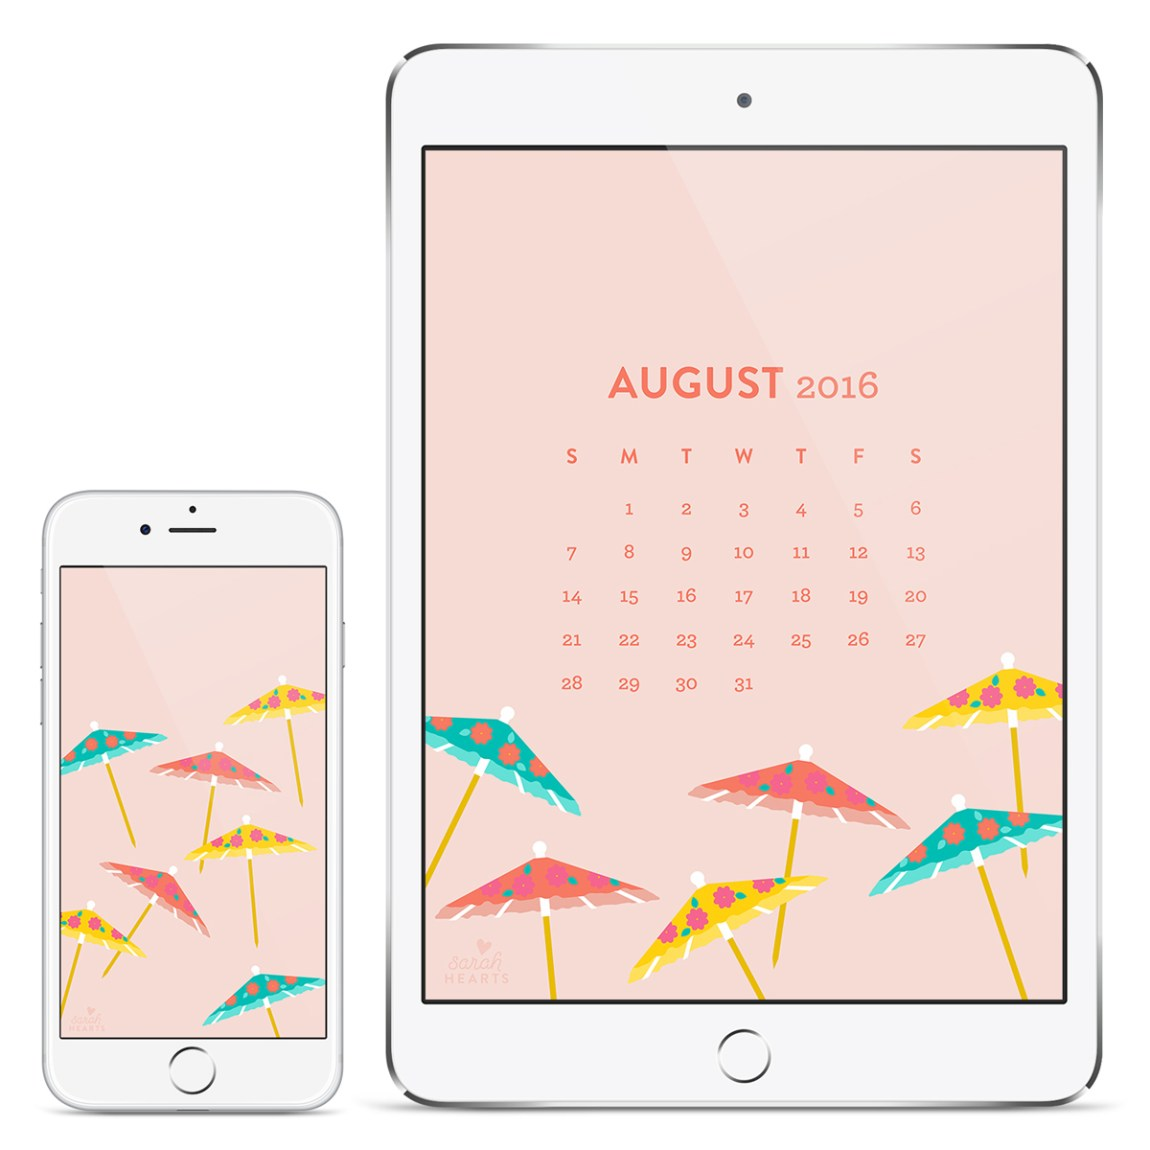 Savor summer by using this free August 2016 calendar wallpaper on all your devices! Features cute and colorful drink umbrellas.